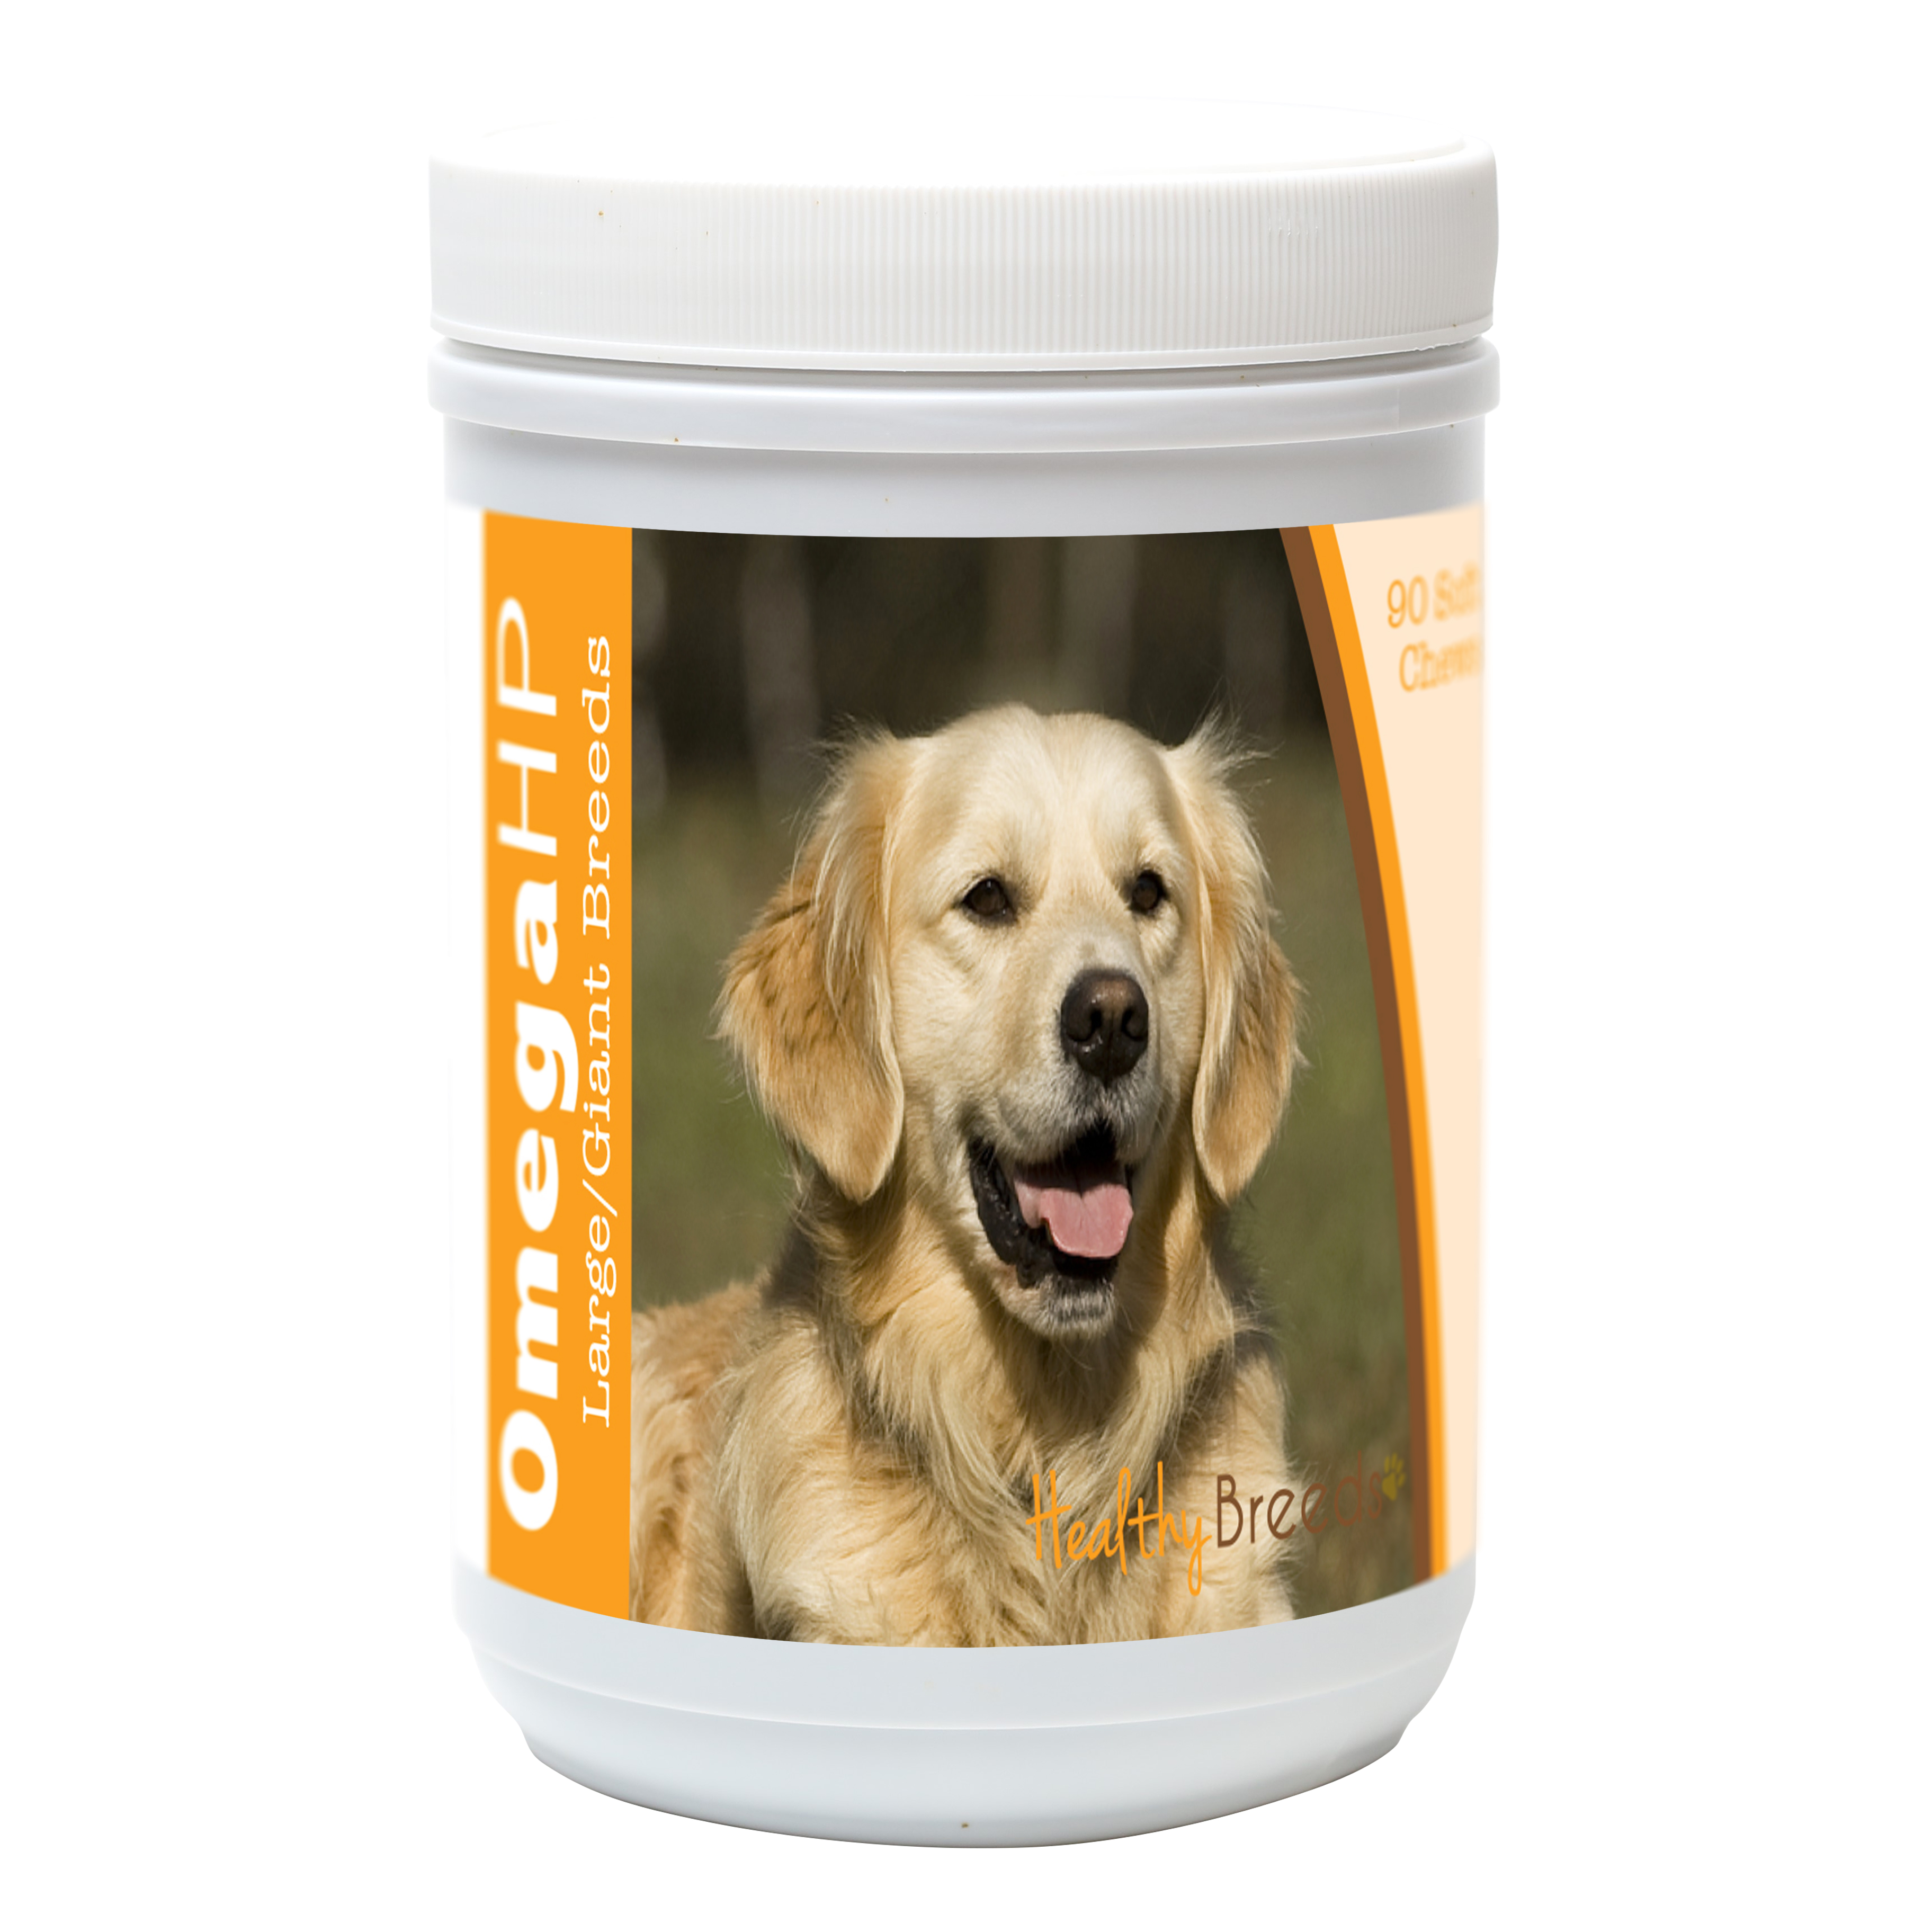 Healthy Breeds Golden Retriever Omega HP Fatty Acid Skin and Coat Support Soft Chews